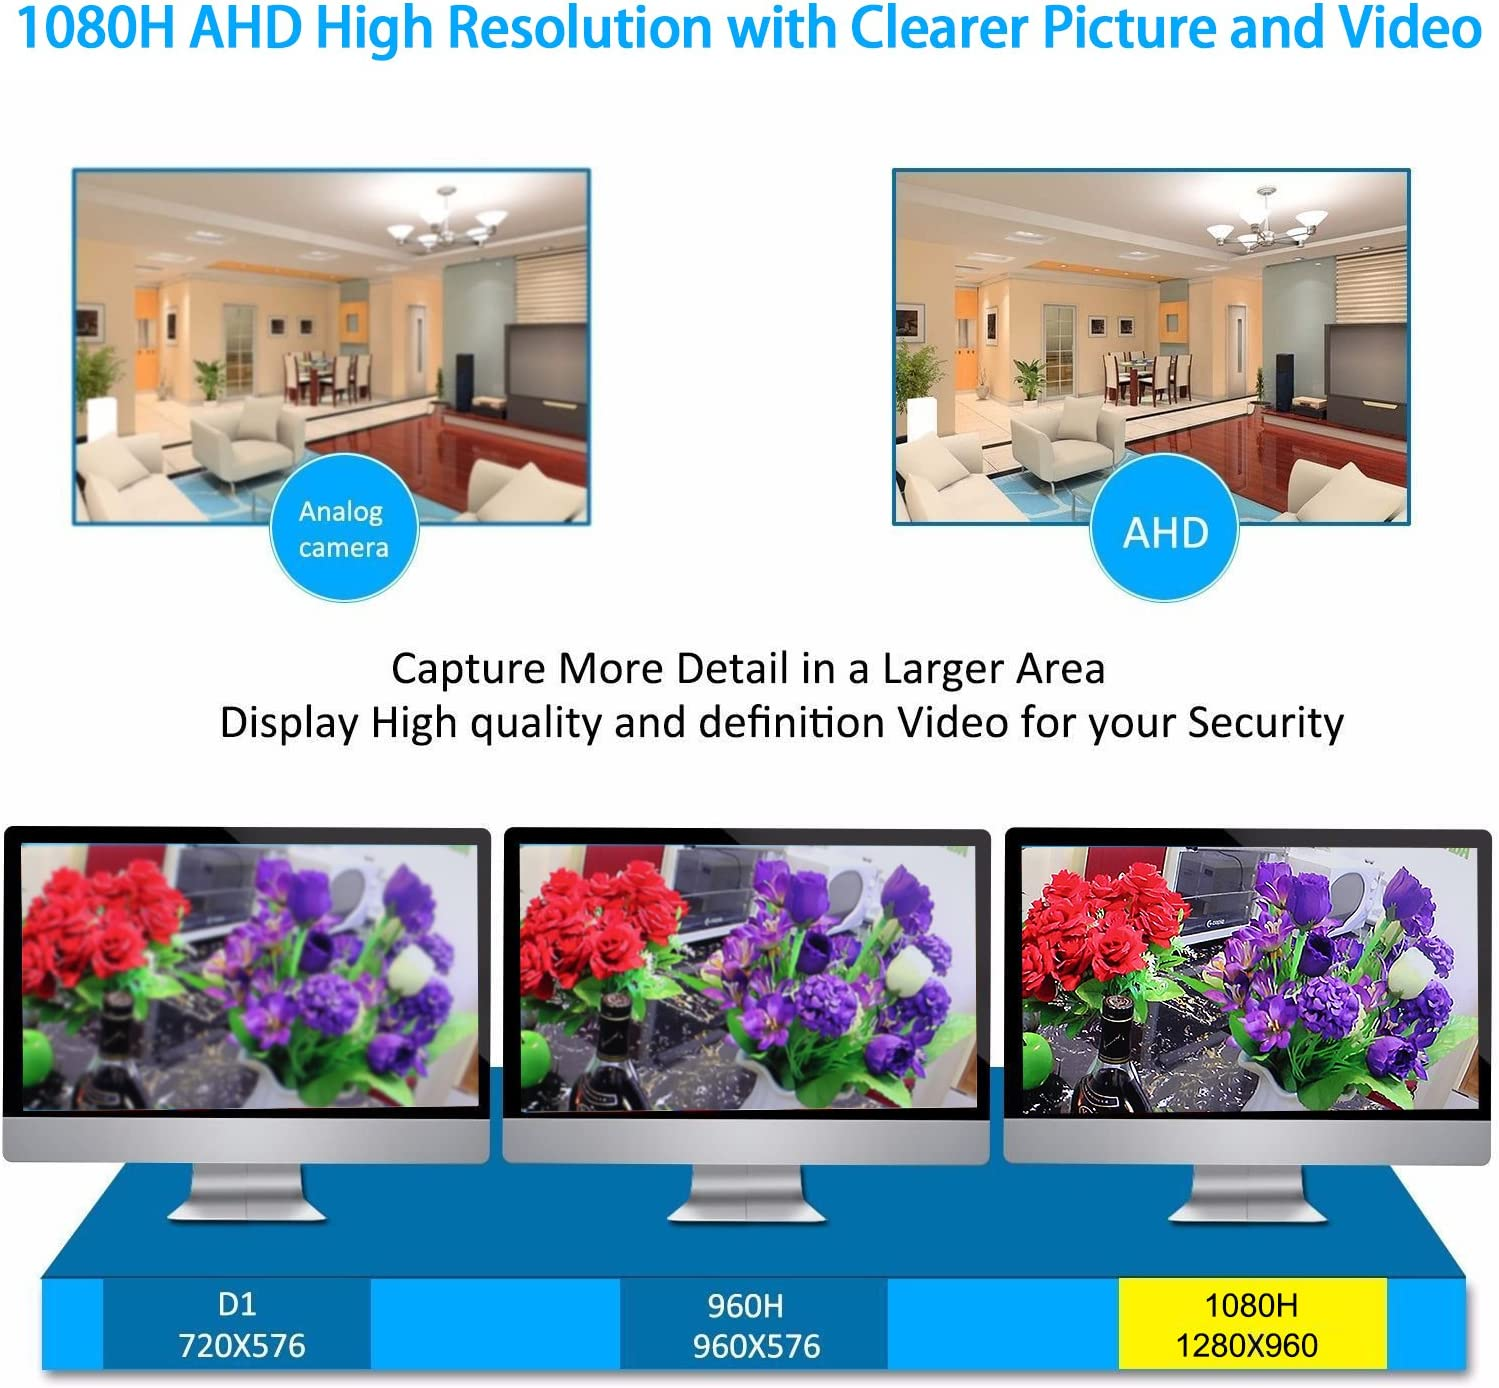 115ft Night Vision,Motion Alert,Smartphone and PC Remote Access Rraycom 4 Channel 1080H Home Security DVR 2000TVL with 4PC 720P HD Outdoor Weatherproof Surveillance Camera System 1TB Hard Drive